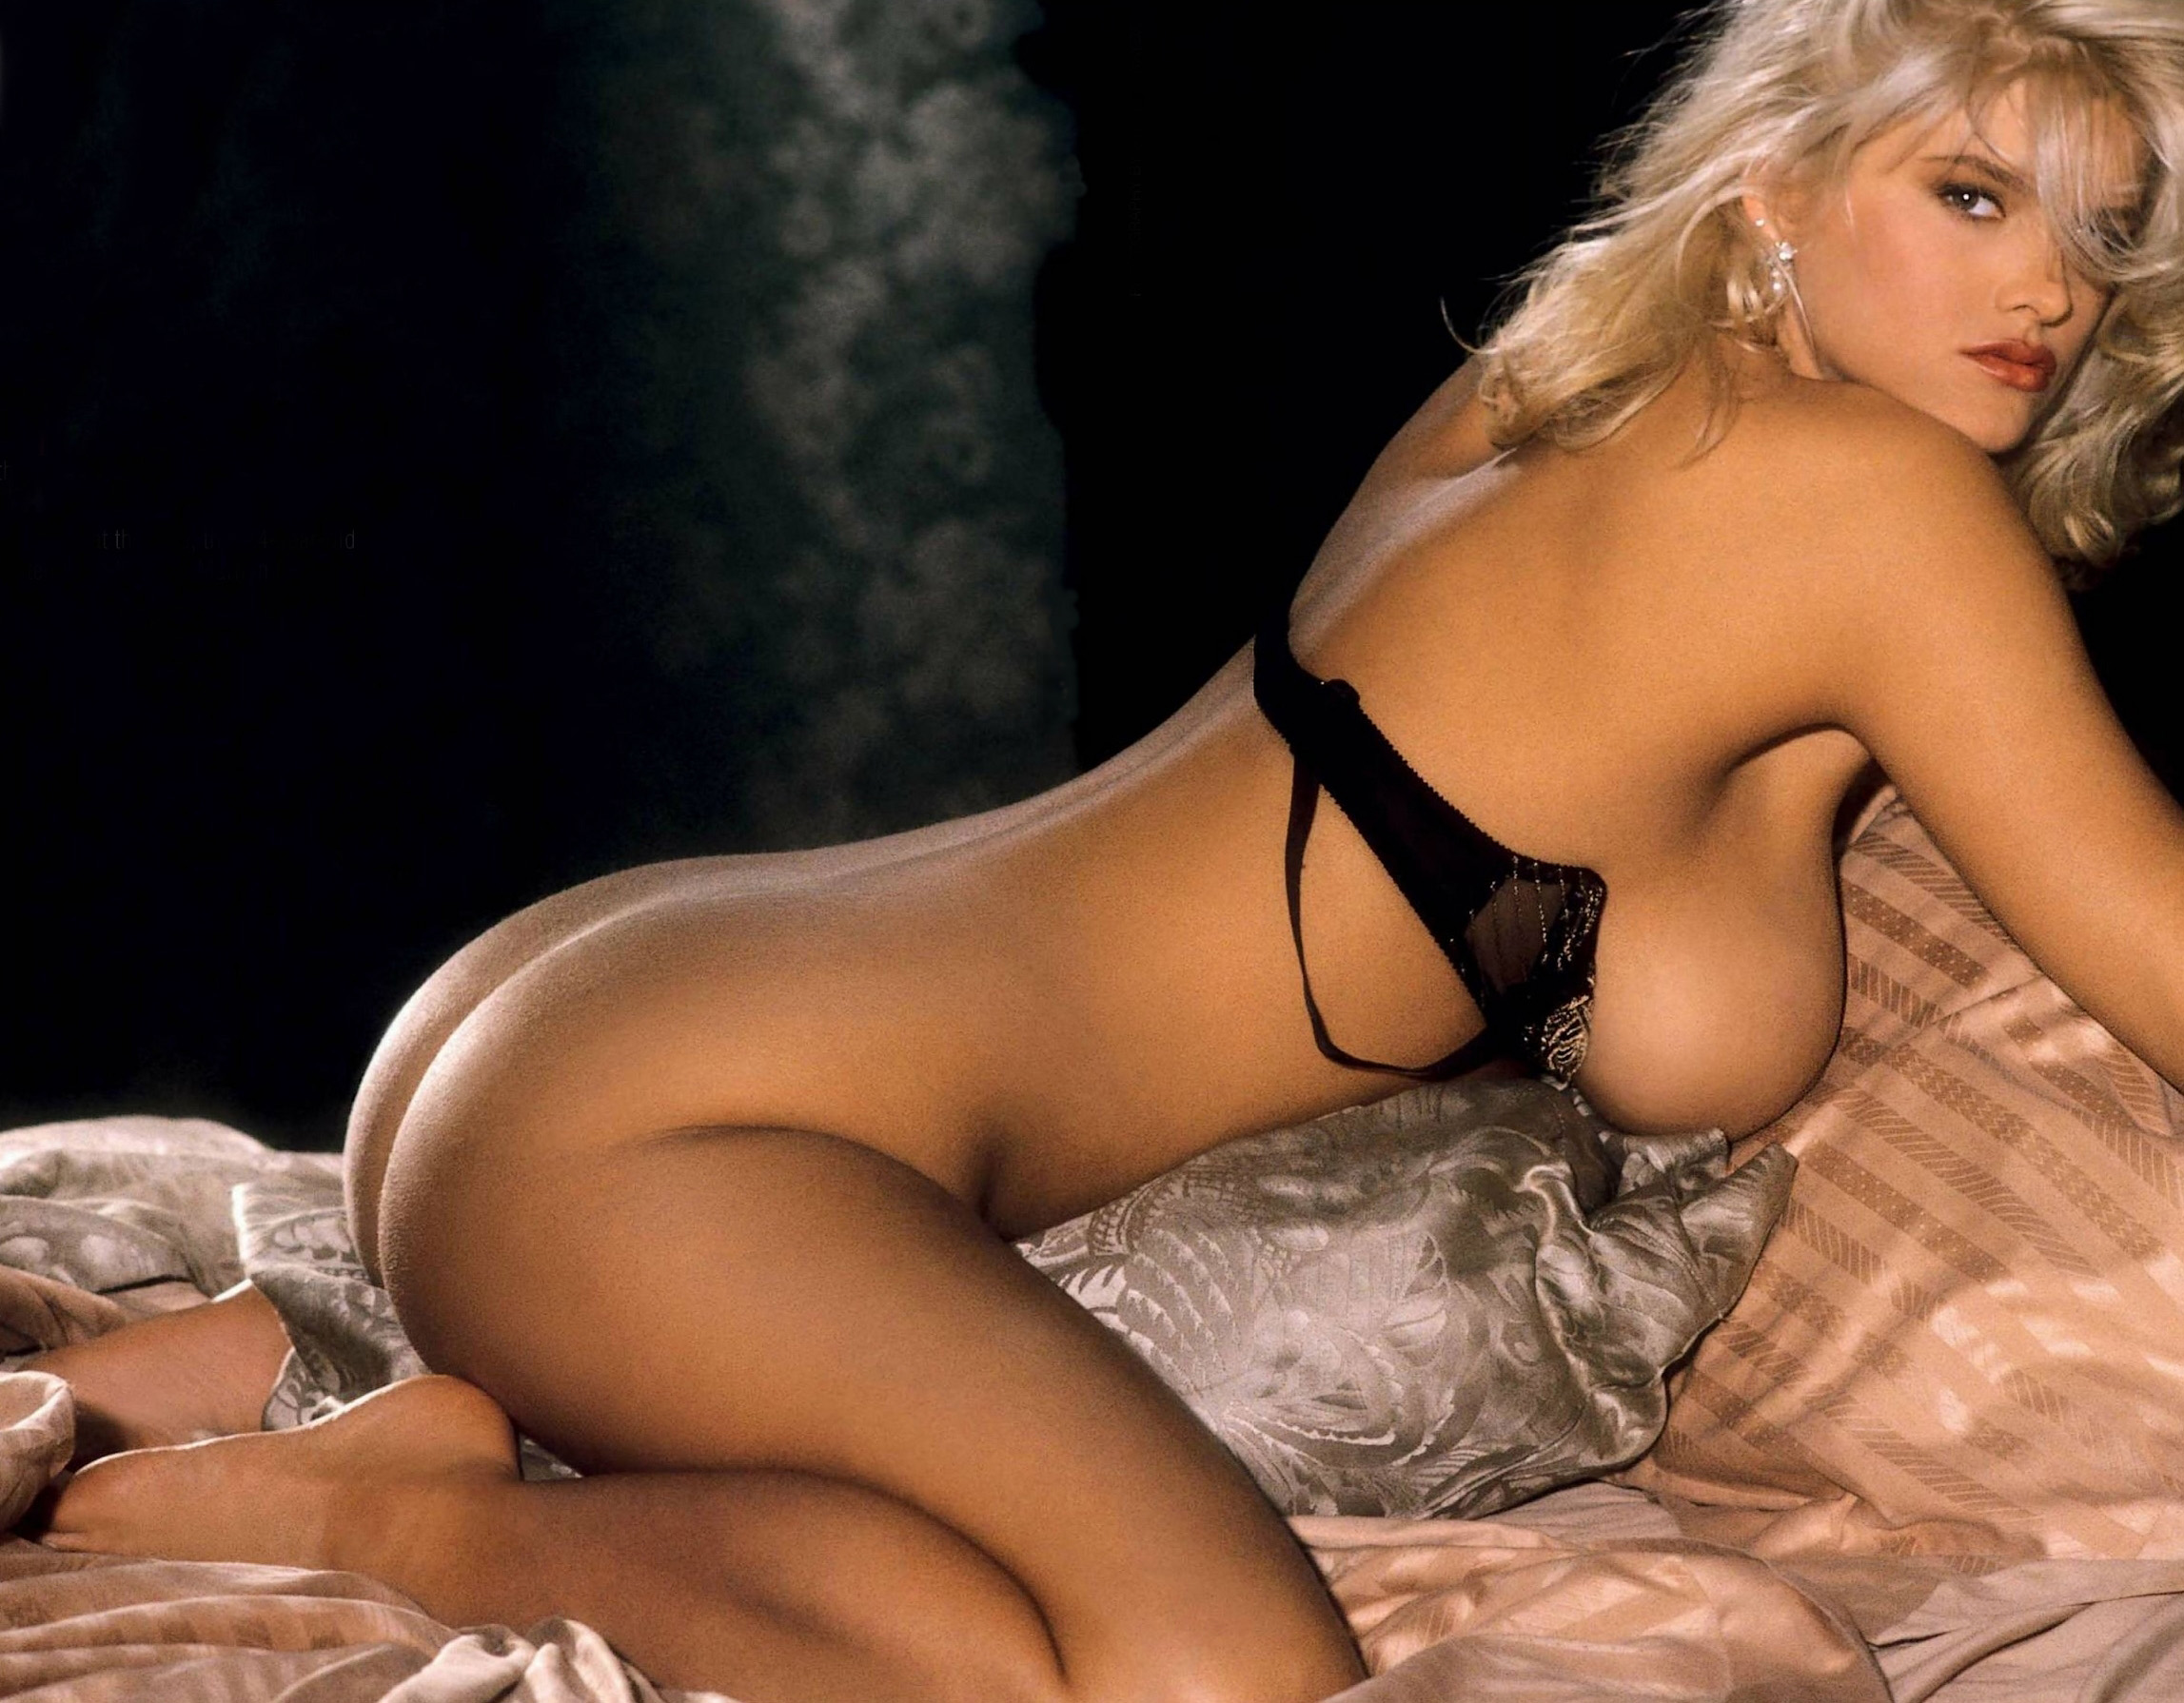 Anna Nicole Smith 25 Playboy.jpg